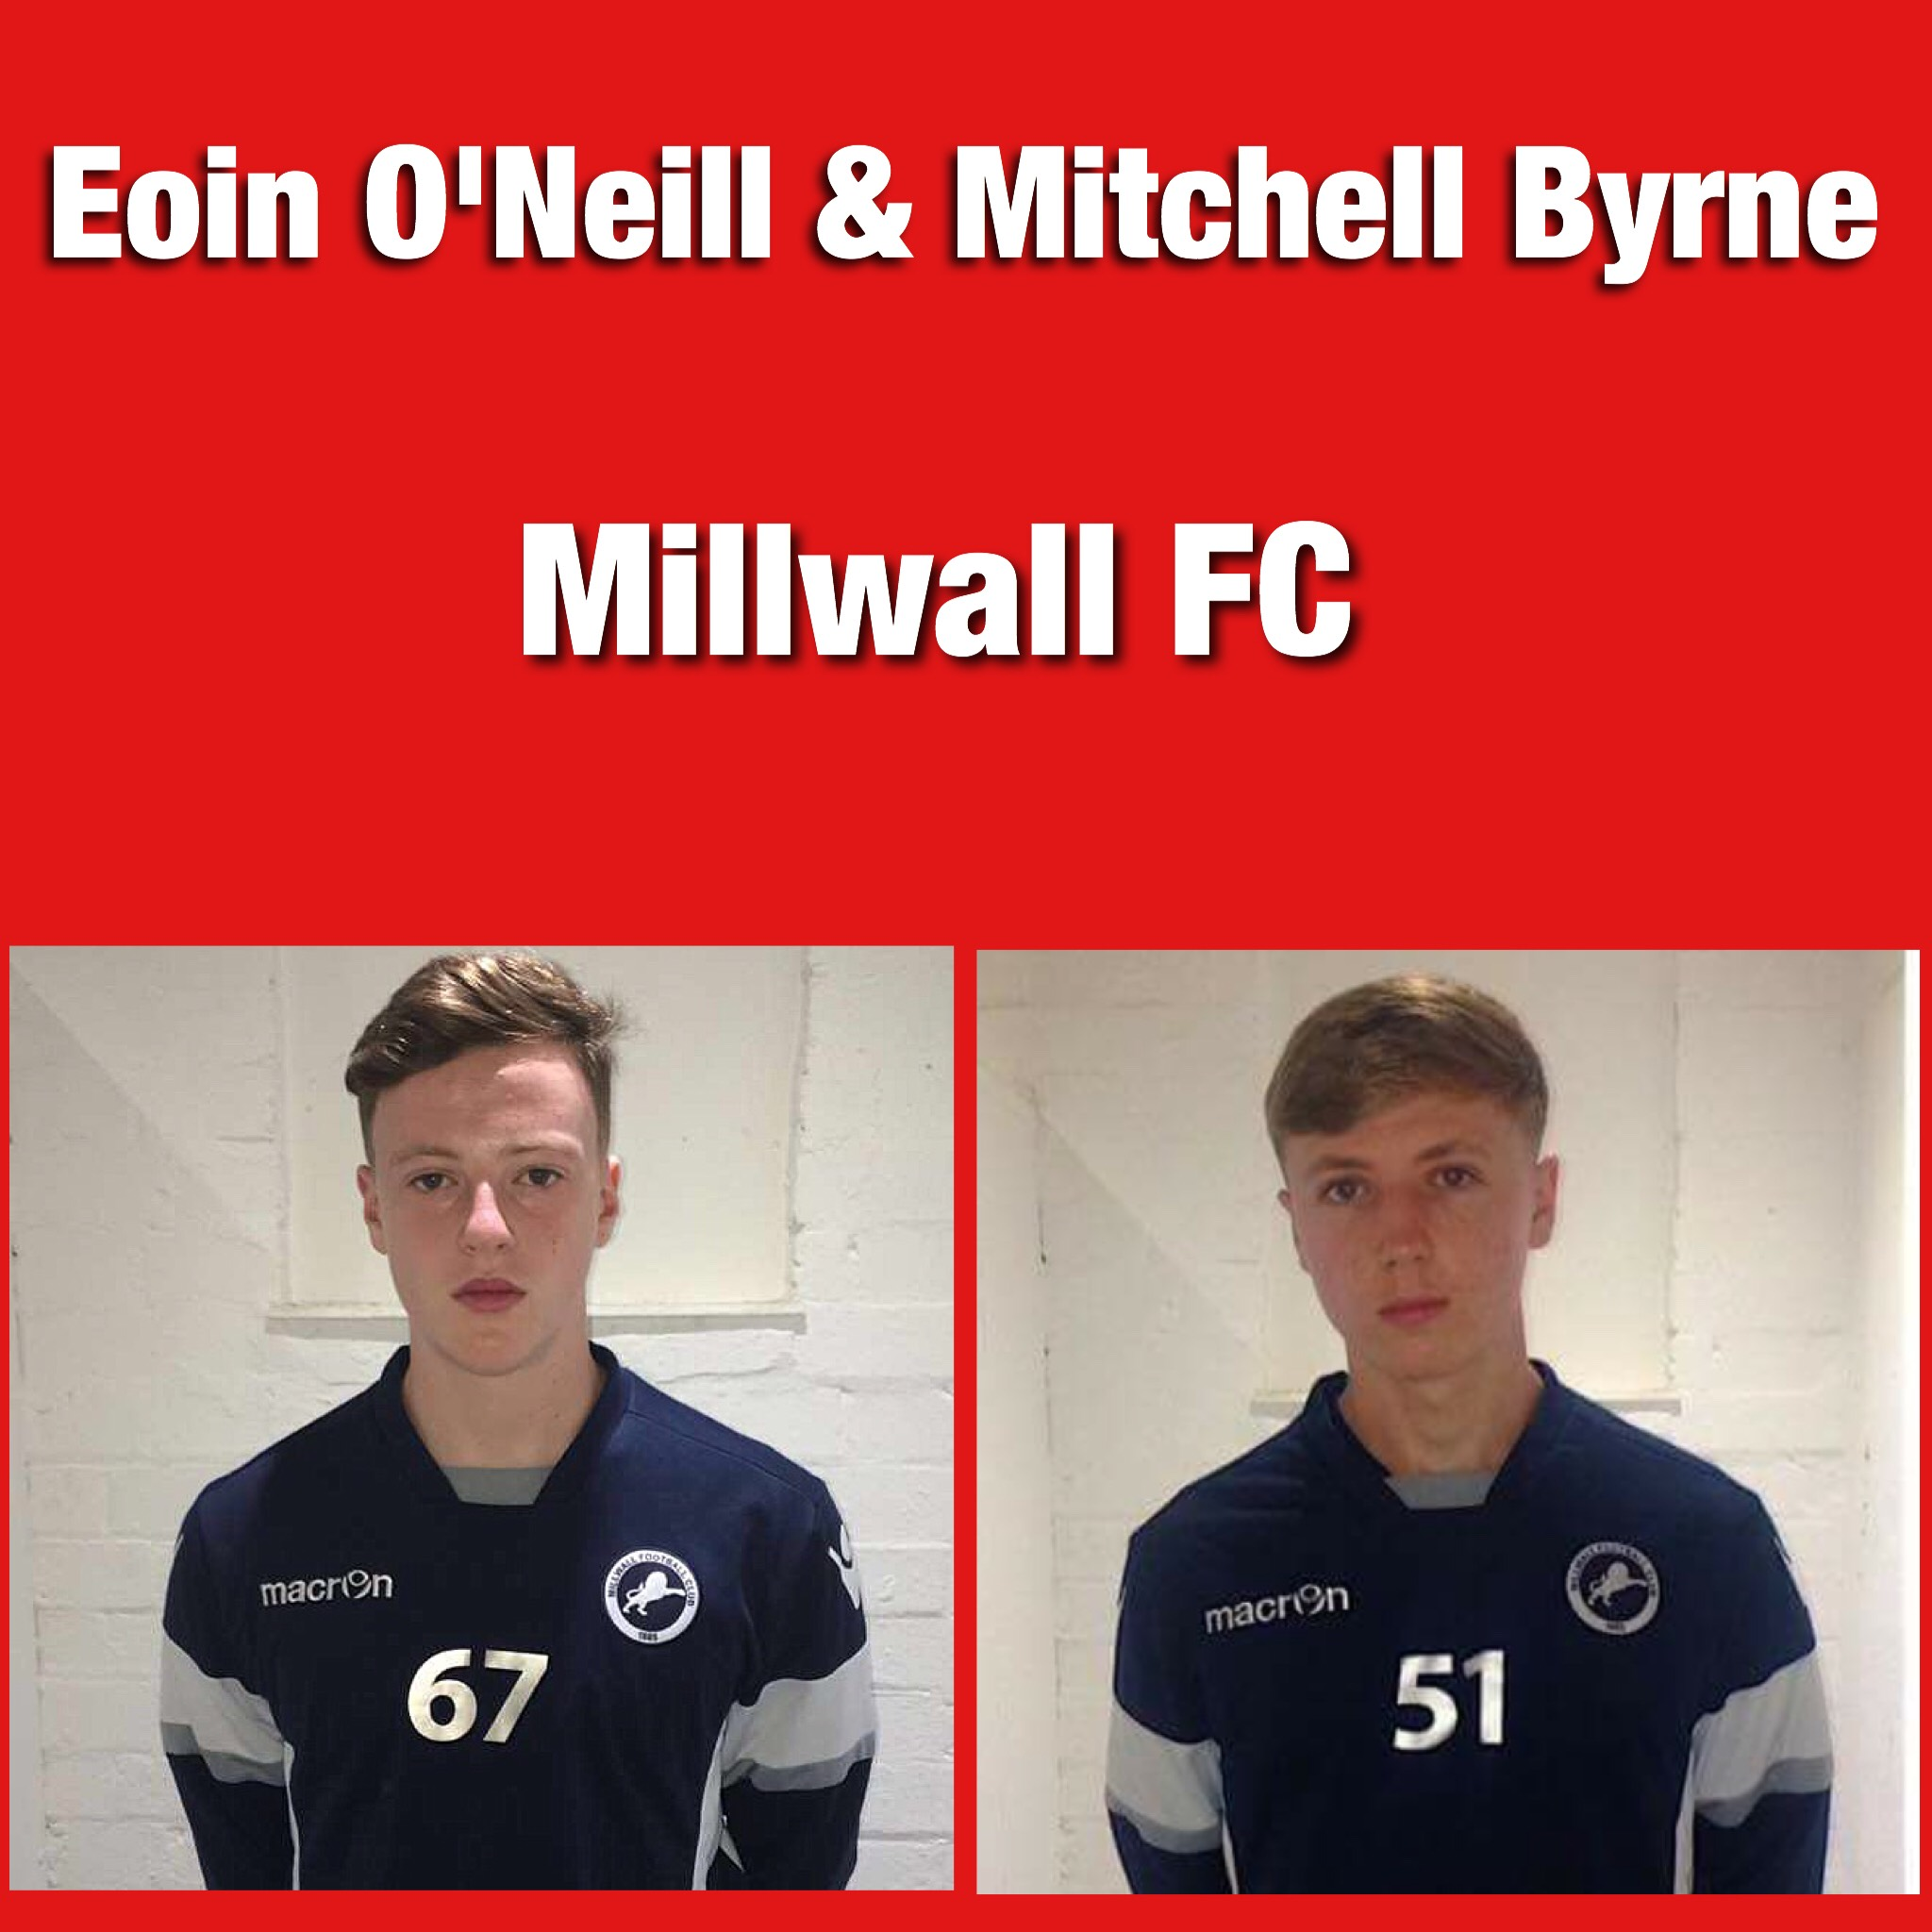 Eoin O'Neill & Mitch Byrne